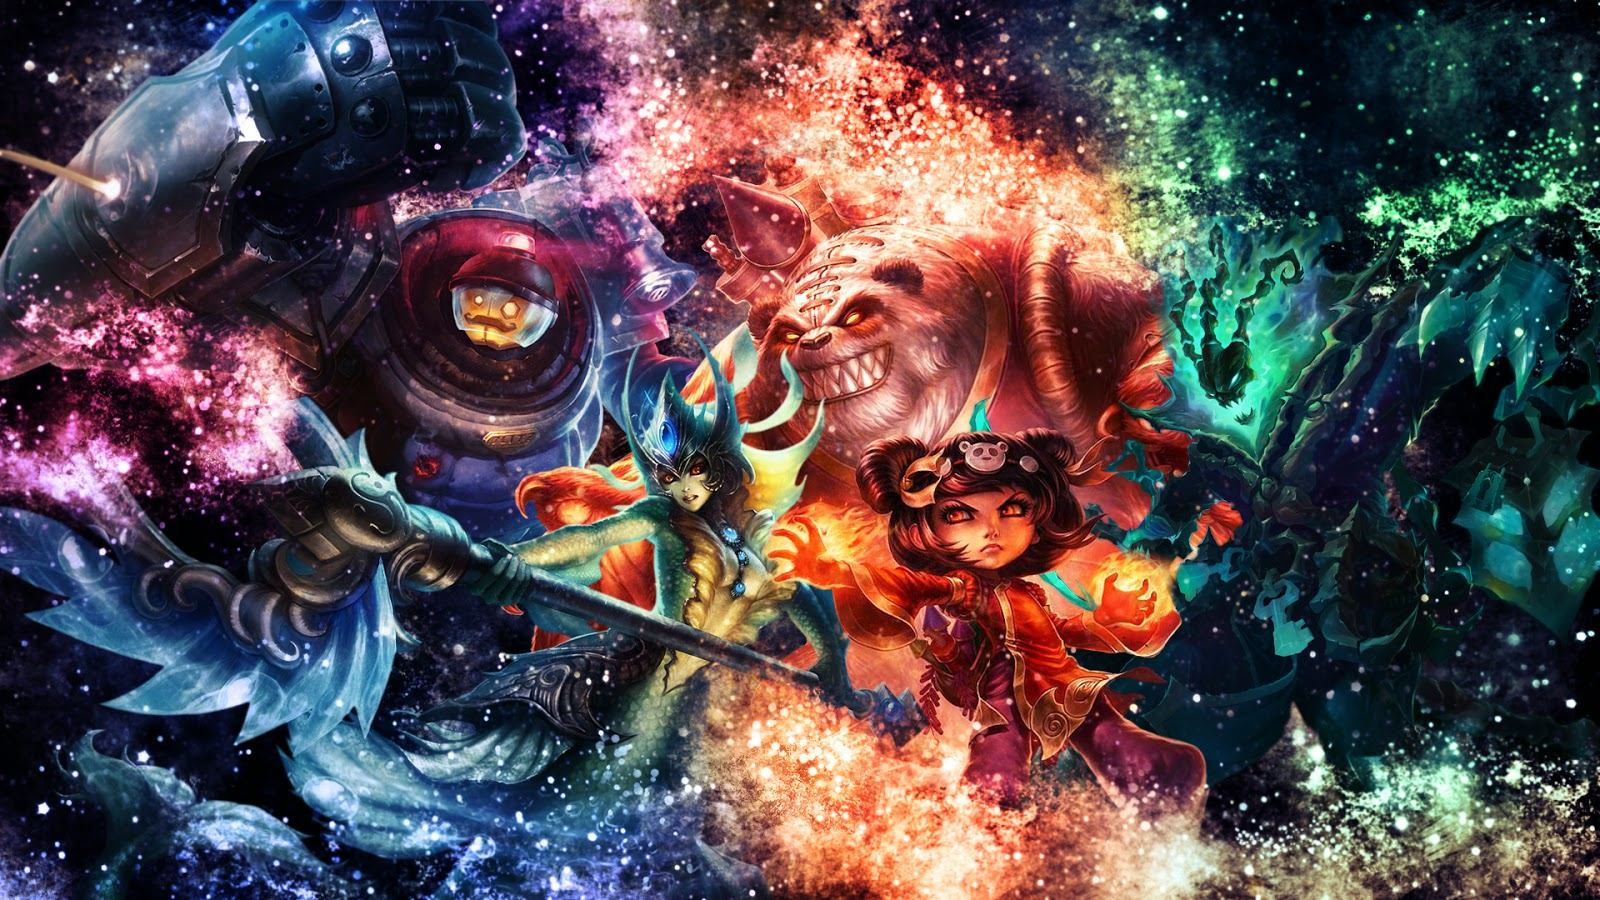 Collection of Desktop Backgrounds League Of Legends on HDWallpapers